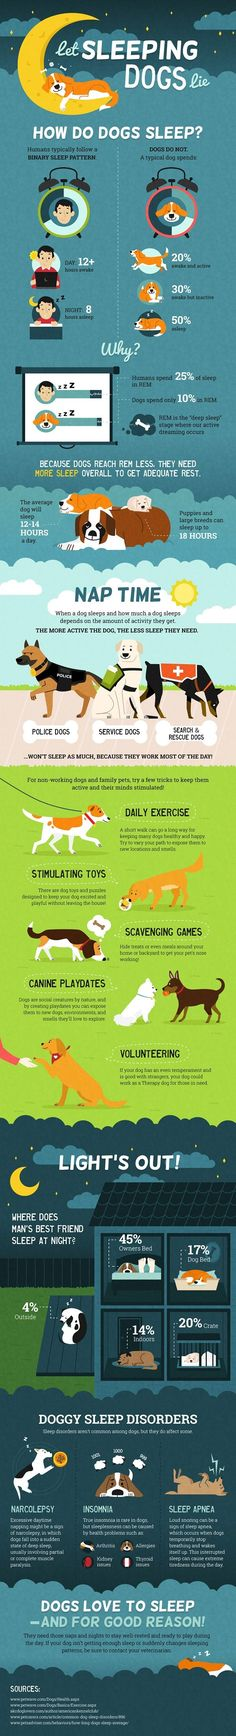 Dog Infographic: how much sleep do dogs need, let sleeping dogs lie